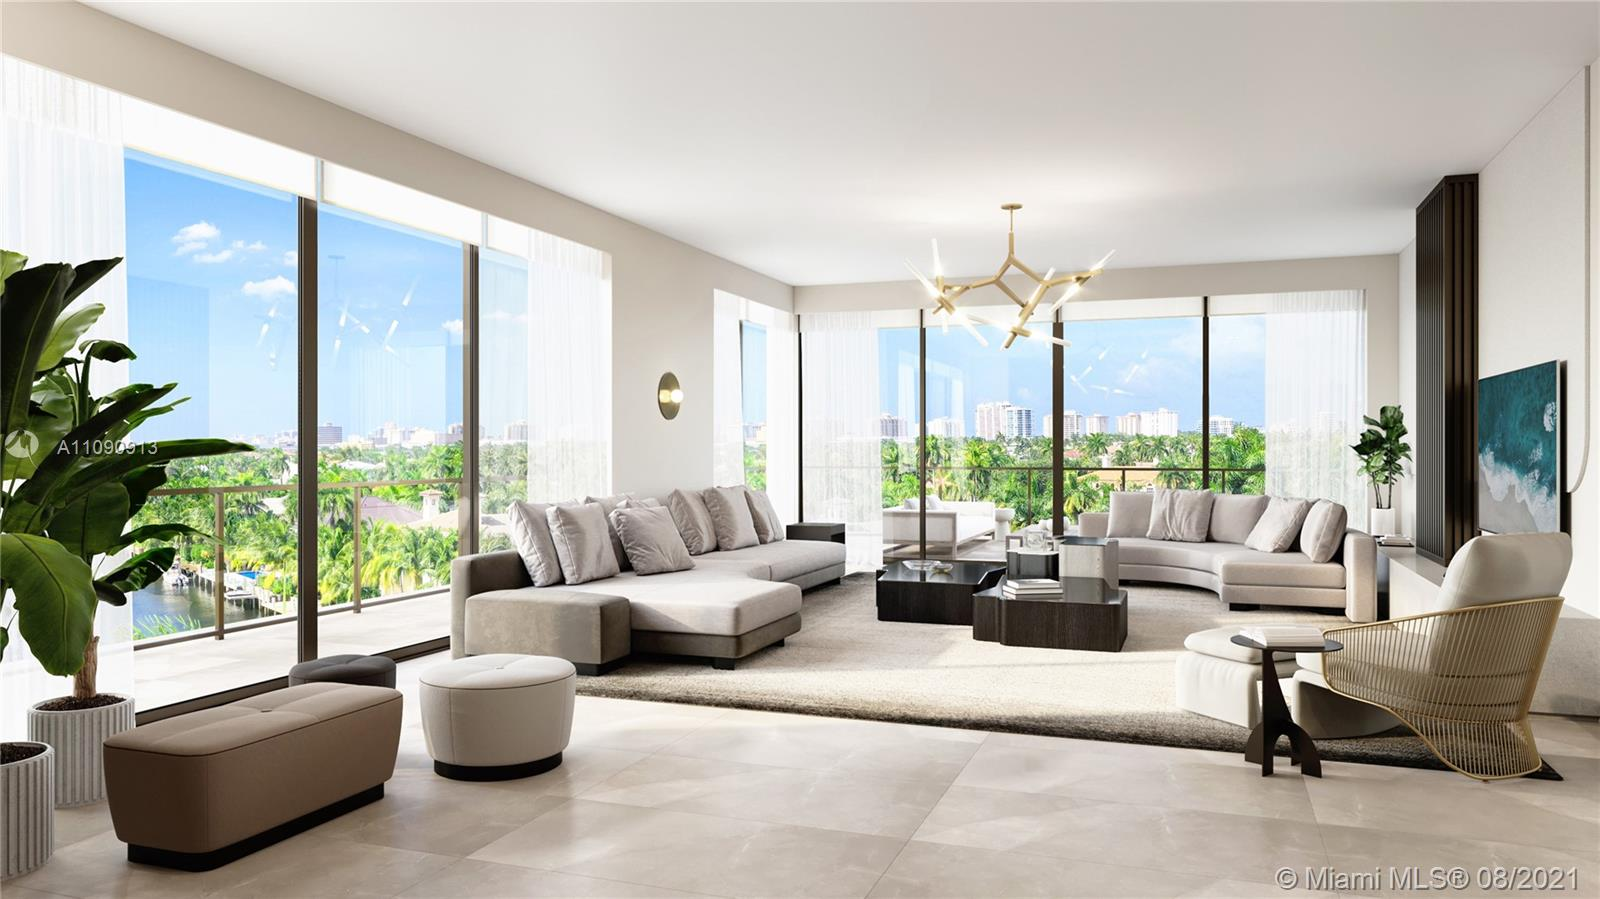 160 Marina Bay- Fort Lauderdale's most exclusive, ultra-luxurious boutique building. 5-stories & 16 striking three-bedroom finished residences w/ over 3,400 Total SF including expansive wraparound waterfront terraces. Centrally located within walking distance of Las Olas Blvd & the beach: the perfect blend of Beach & City! 10' ceilings, private elevator lobby to each residence, Italian cabinetry w/ high-end appliances, built-in bar in dining room, SMART HOME: control lights, front door, shades & even master shower by voice control! Private Marina w/ 14 boat slips, pool overlooking canal w/ cabana & BBQ area, self-servicing package lockers & more! Strategically located near the east-facing far end of Isle of Venice Dr for more privacy & stunning waterway views. Slated completion EARLY 2022!